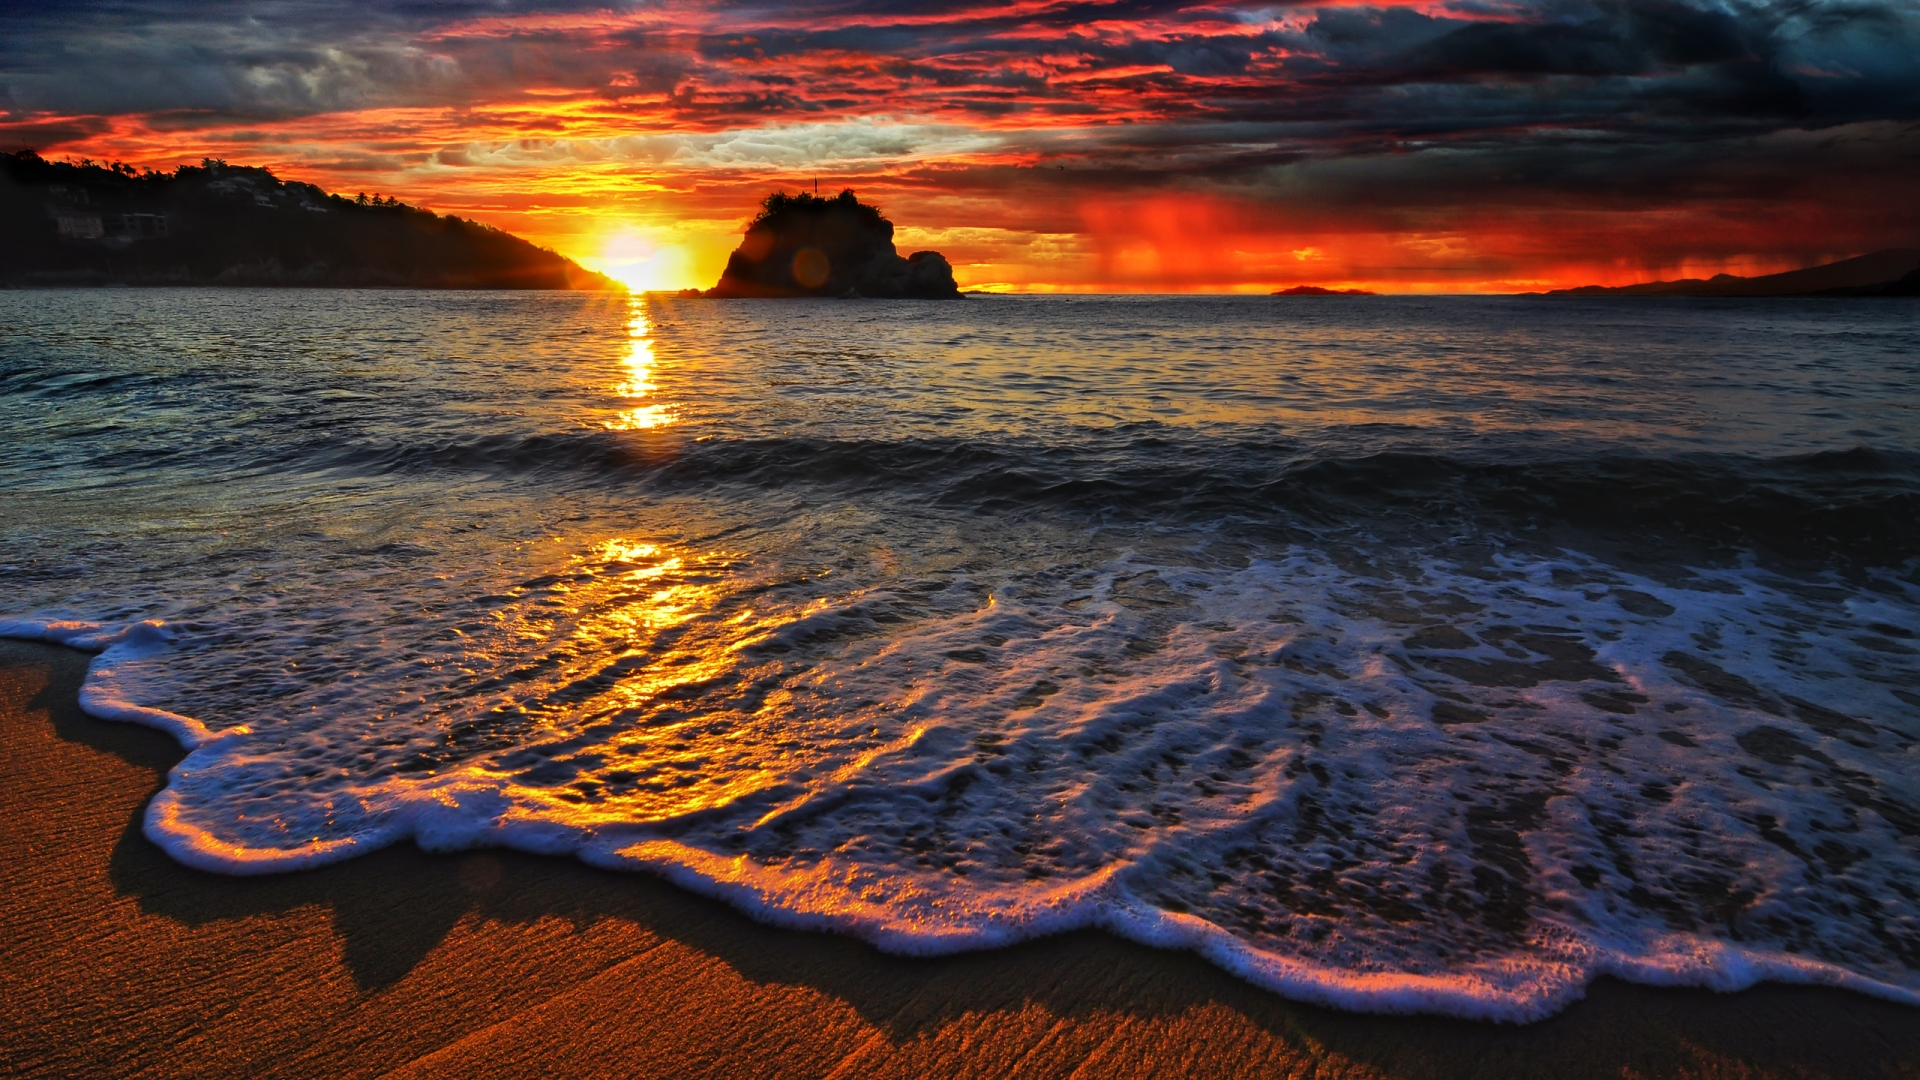 Sunset Wallpapers HD sea shore beach